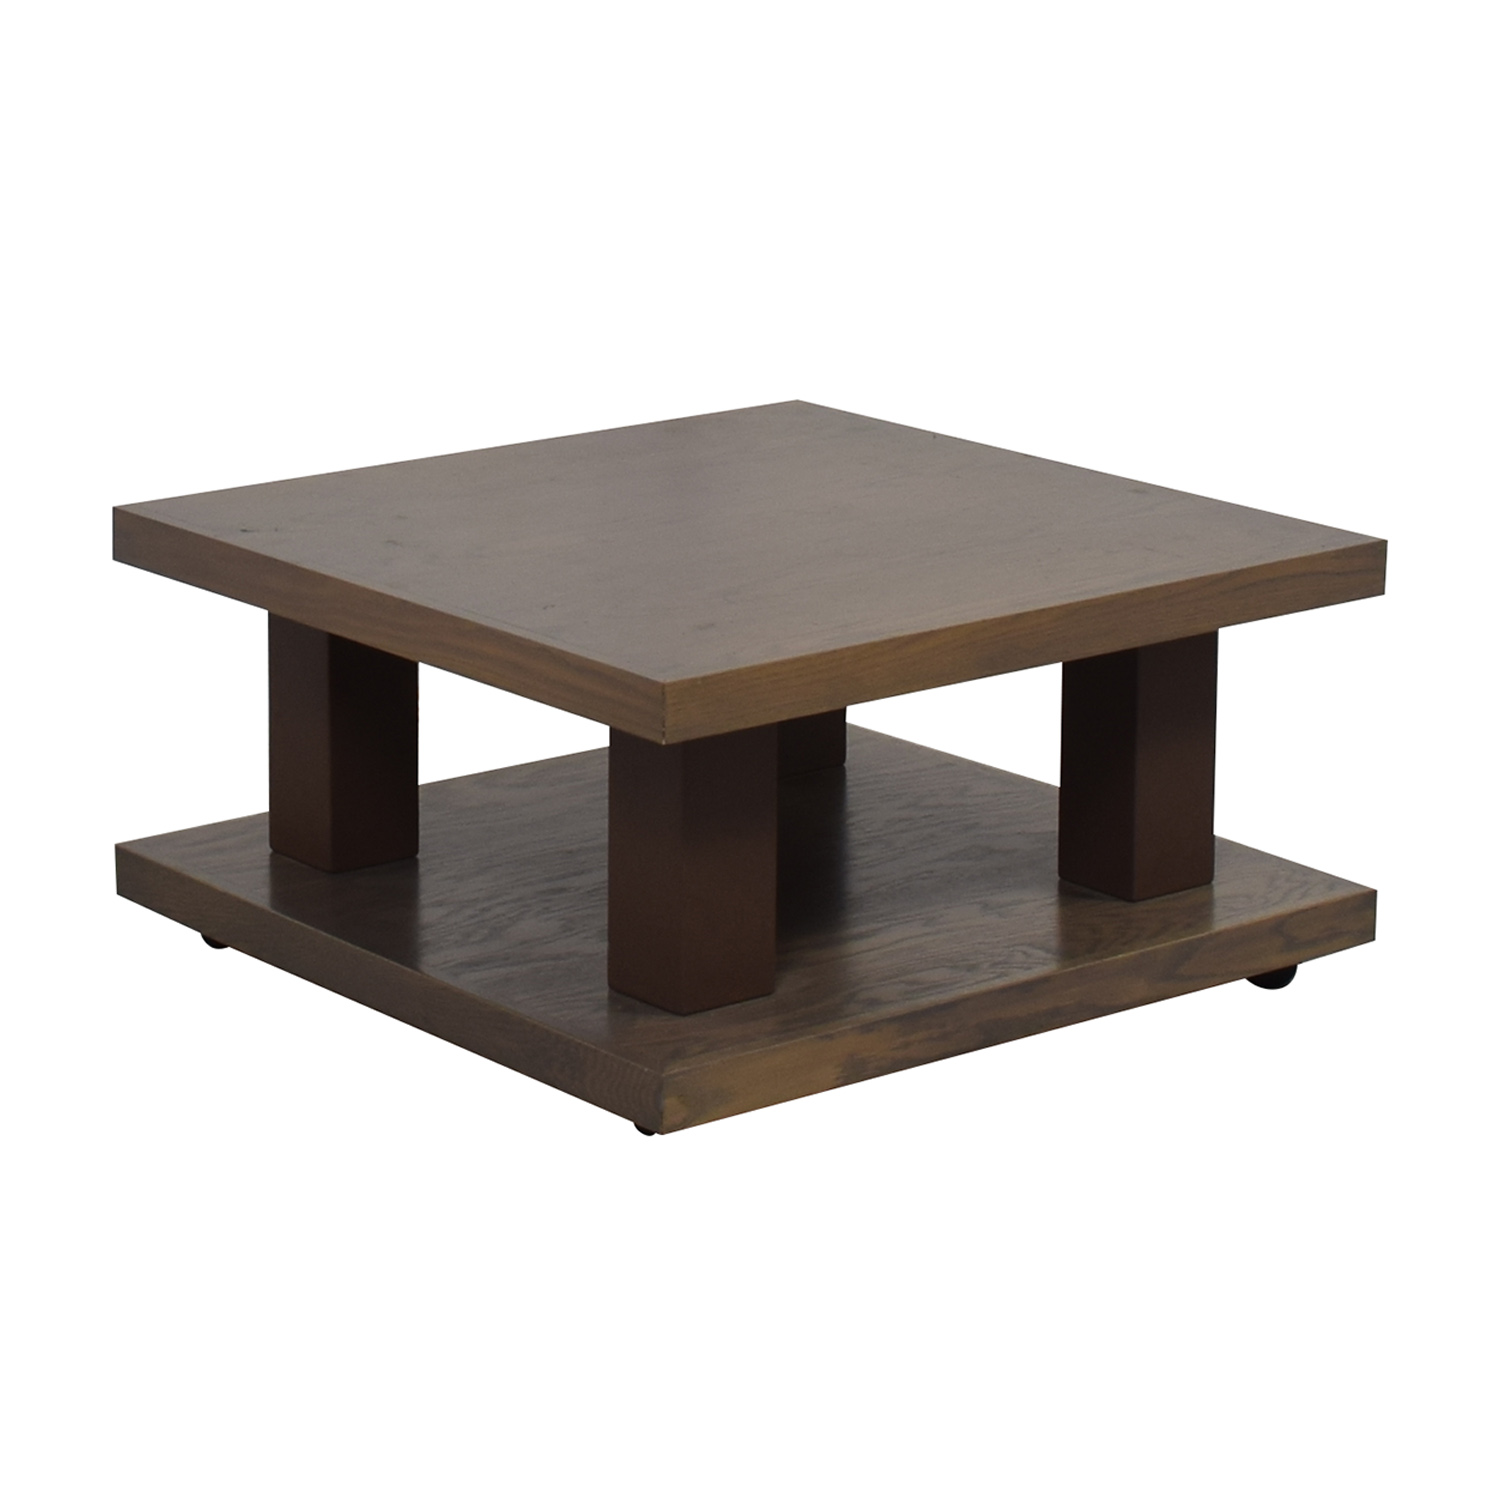 Aspen Home Coffee Table.75 Off Aspenhome Aspenhome Grey Driftwood Square Coffee Table On Wheels Tables